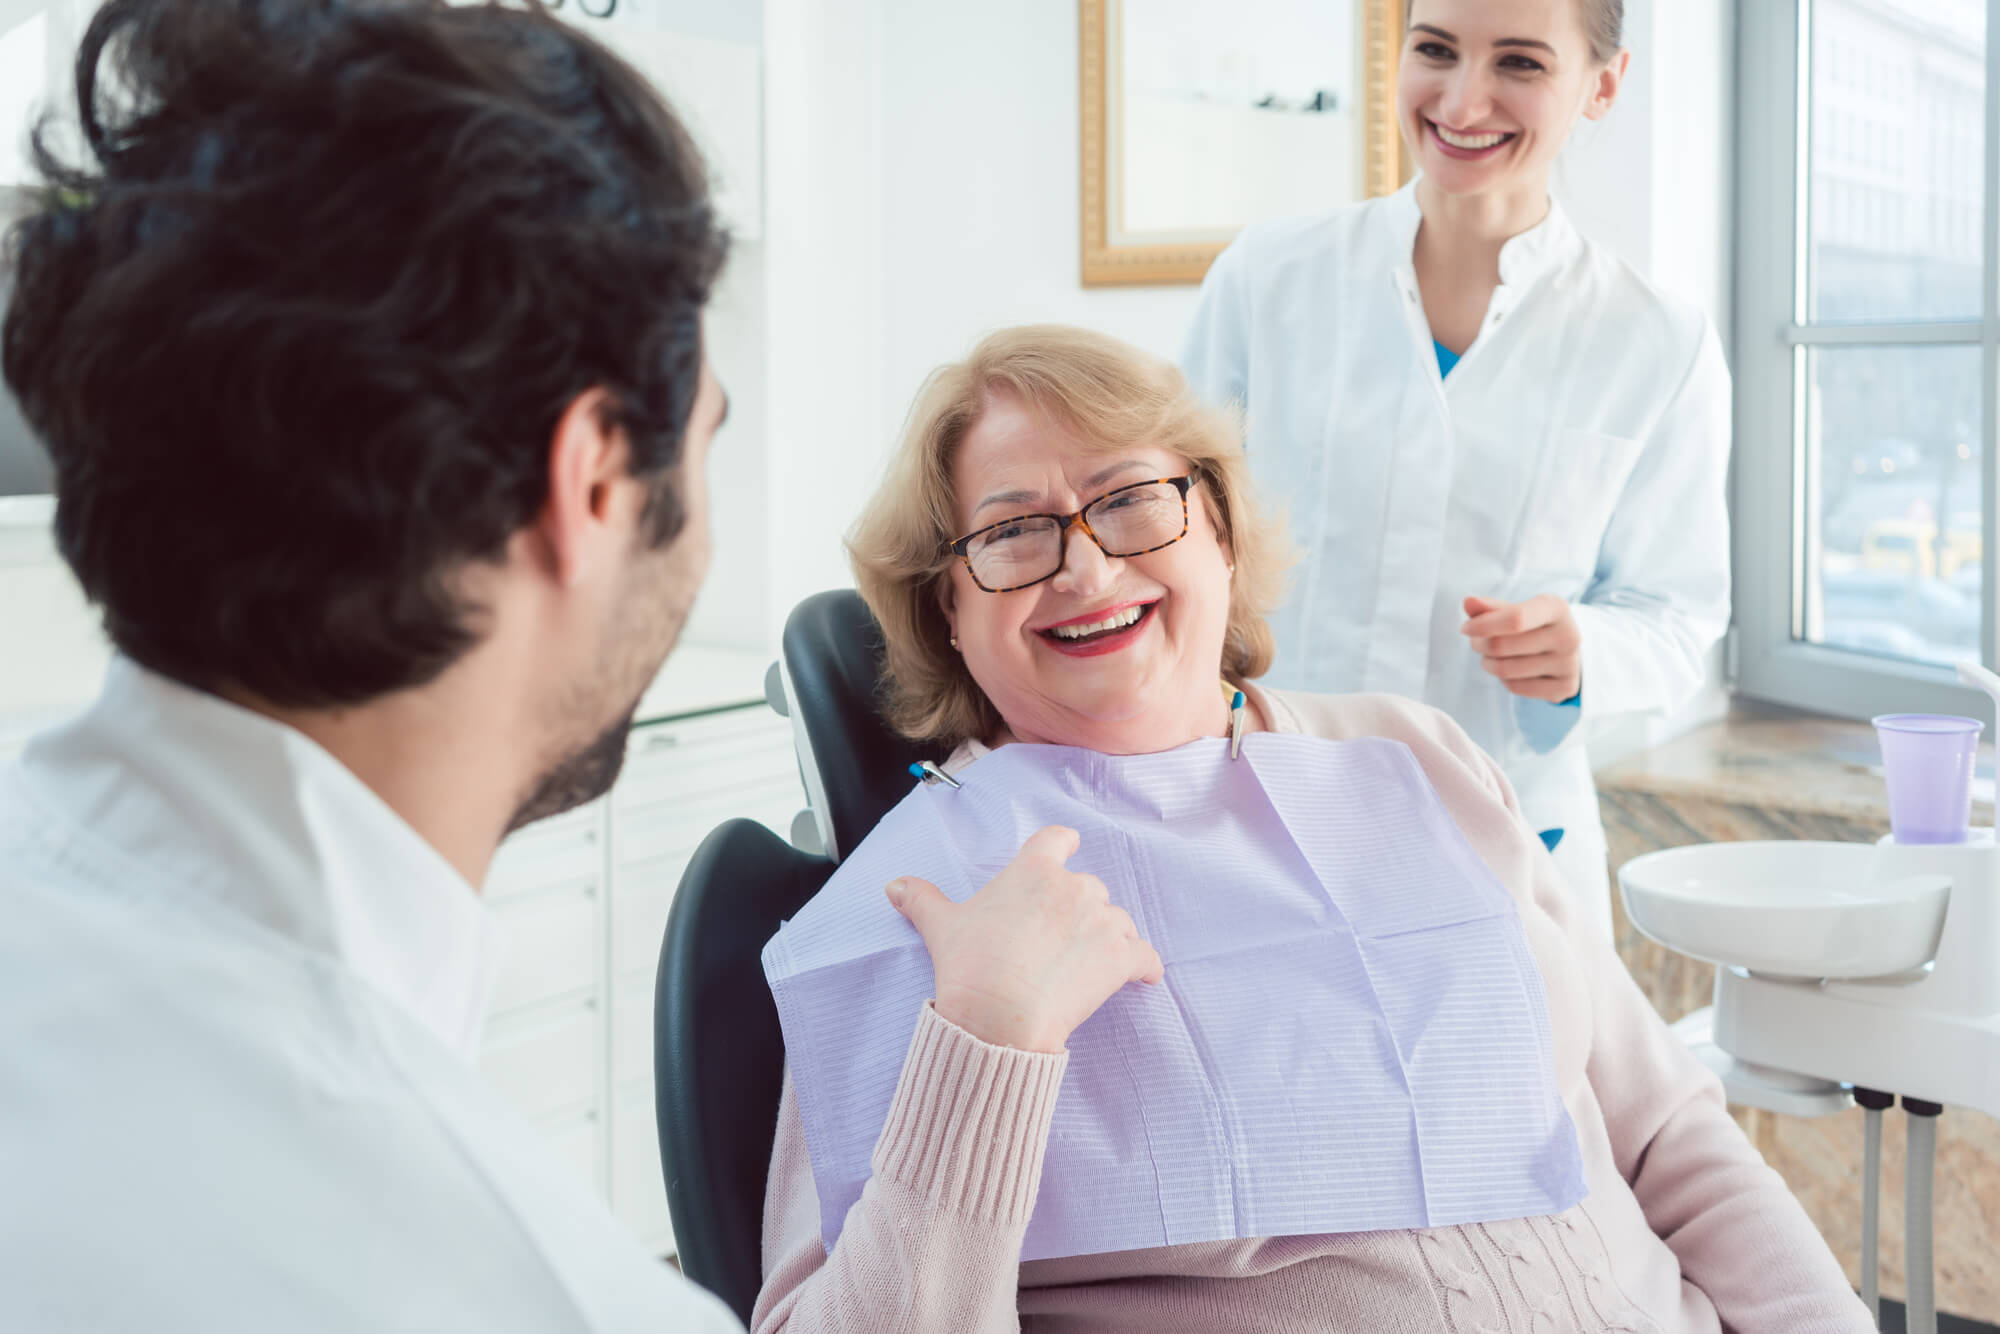 dental experts talk to a patient about dental implants in Pembroke Pines